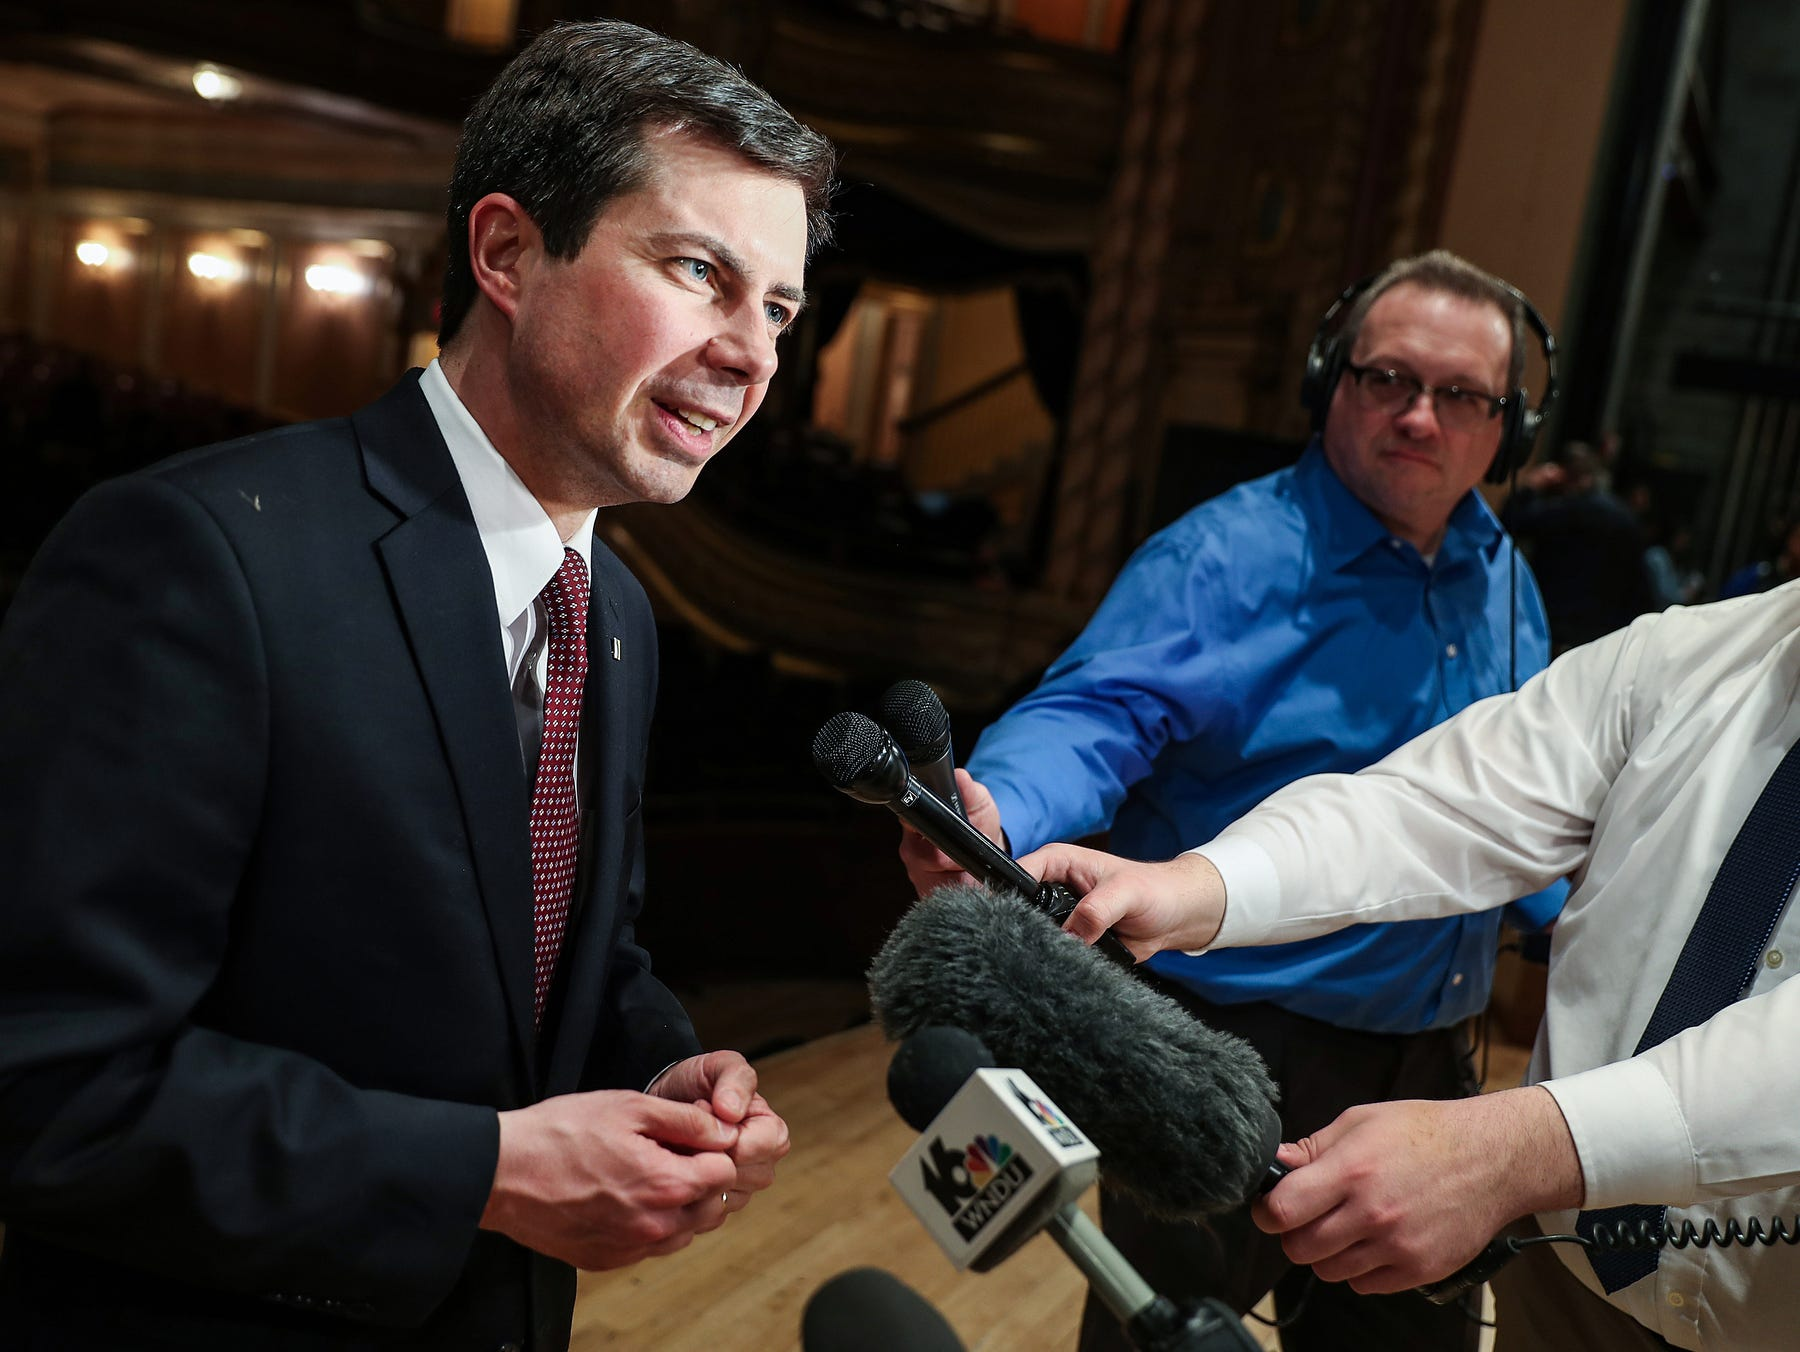 South Bend Mayor Pete Buttigieg speaks to members of the media after his final State of the City address in South Bend, Ind. on Tuesday, March 12, 2019. After serving 8 years as mayor of South Bend, Buttigieg, 37, announced that he intends to run for election in the 2020 Democratic presidential primary.